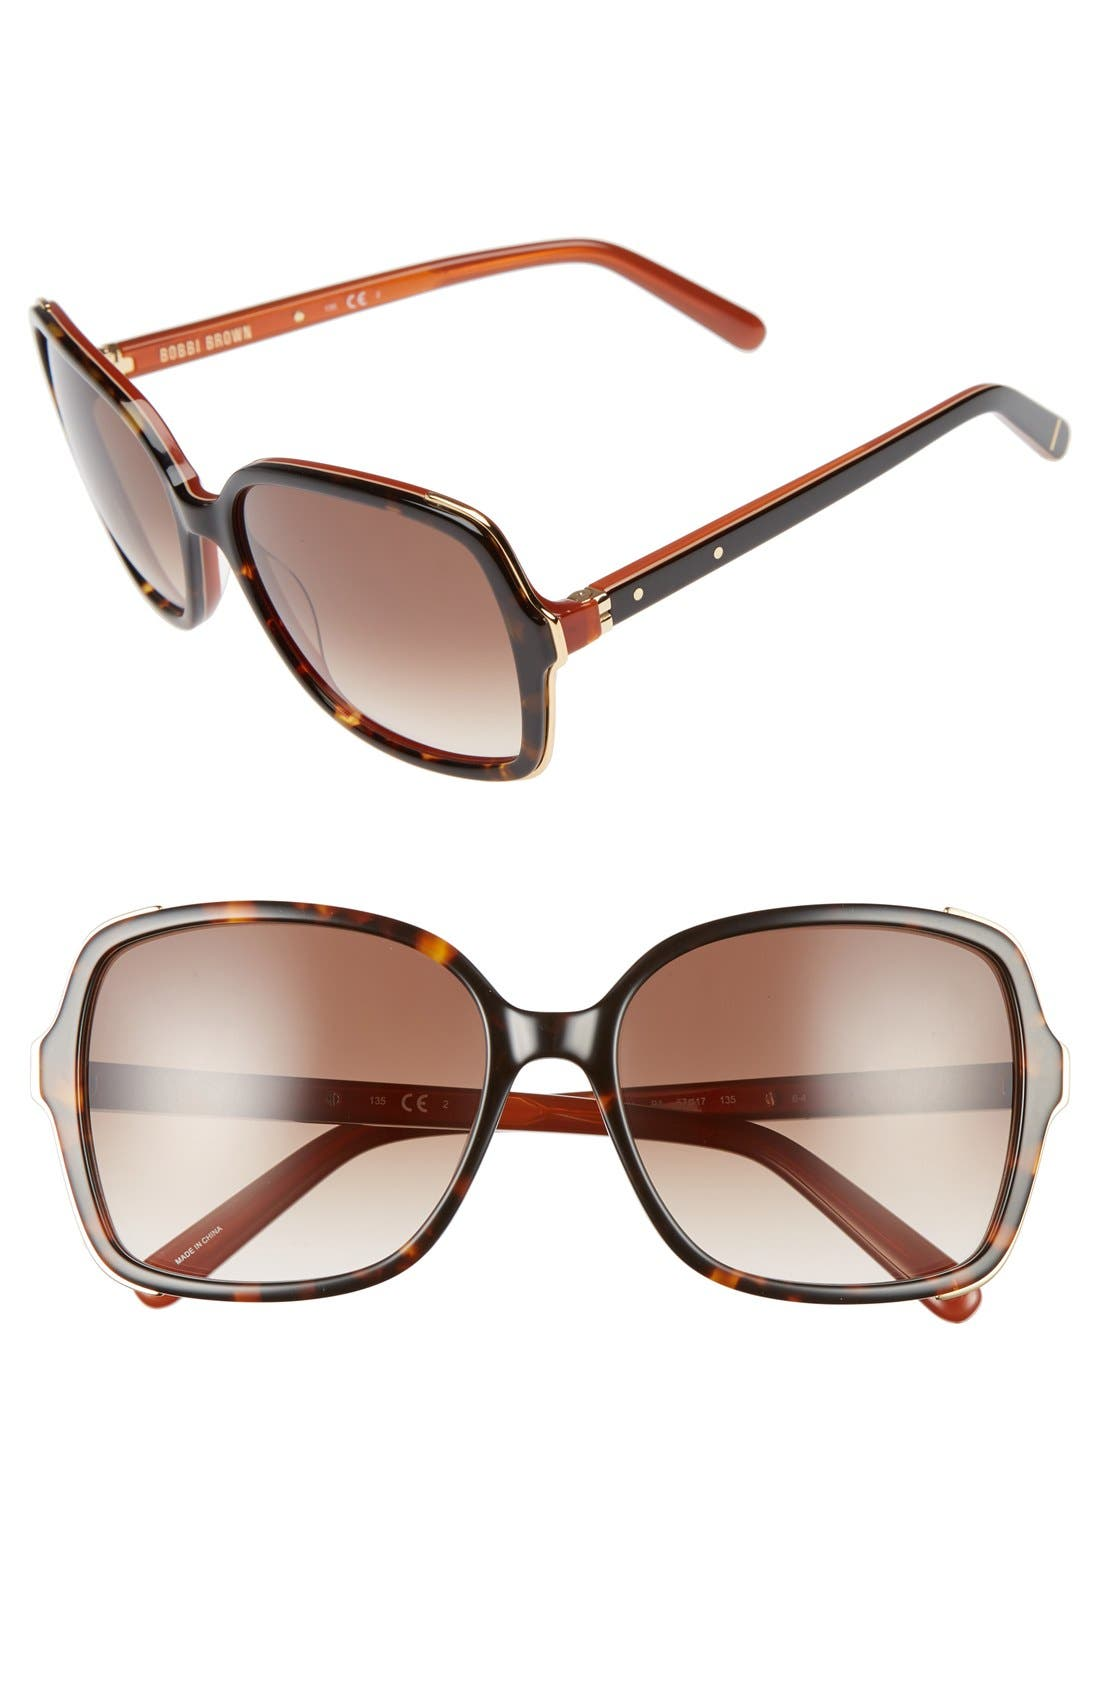 Main Image - Bobbi Brown 'The Alice' 57mm Sunglasses